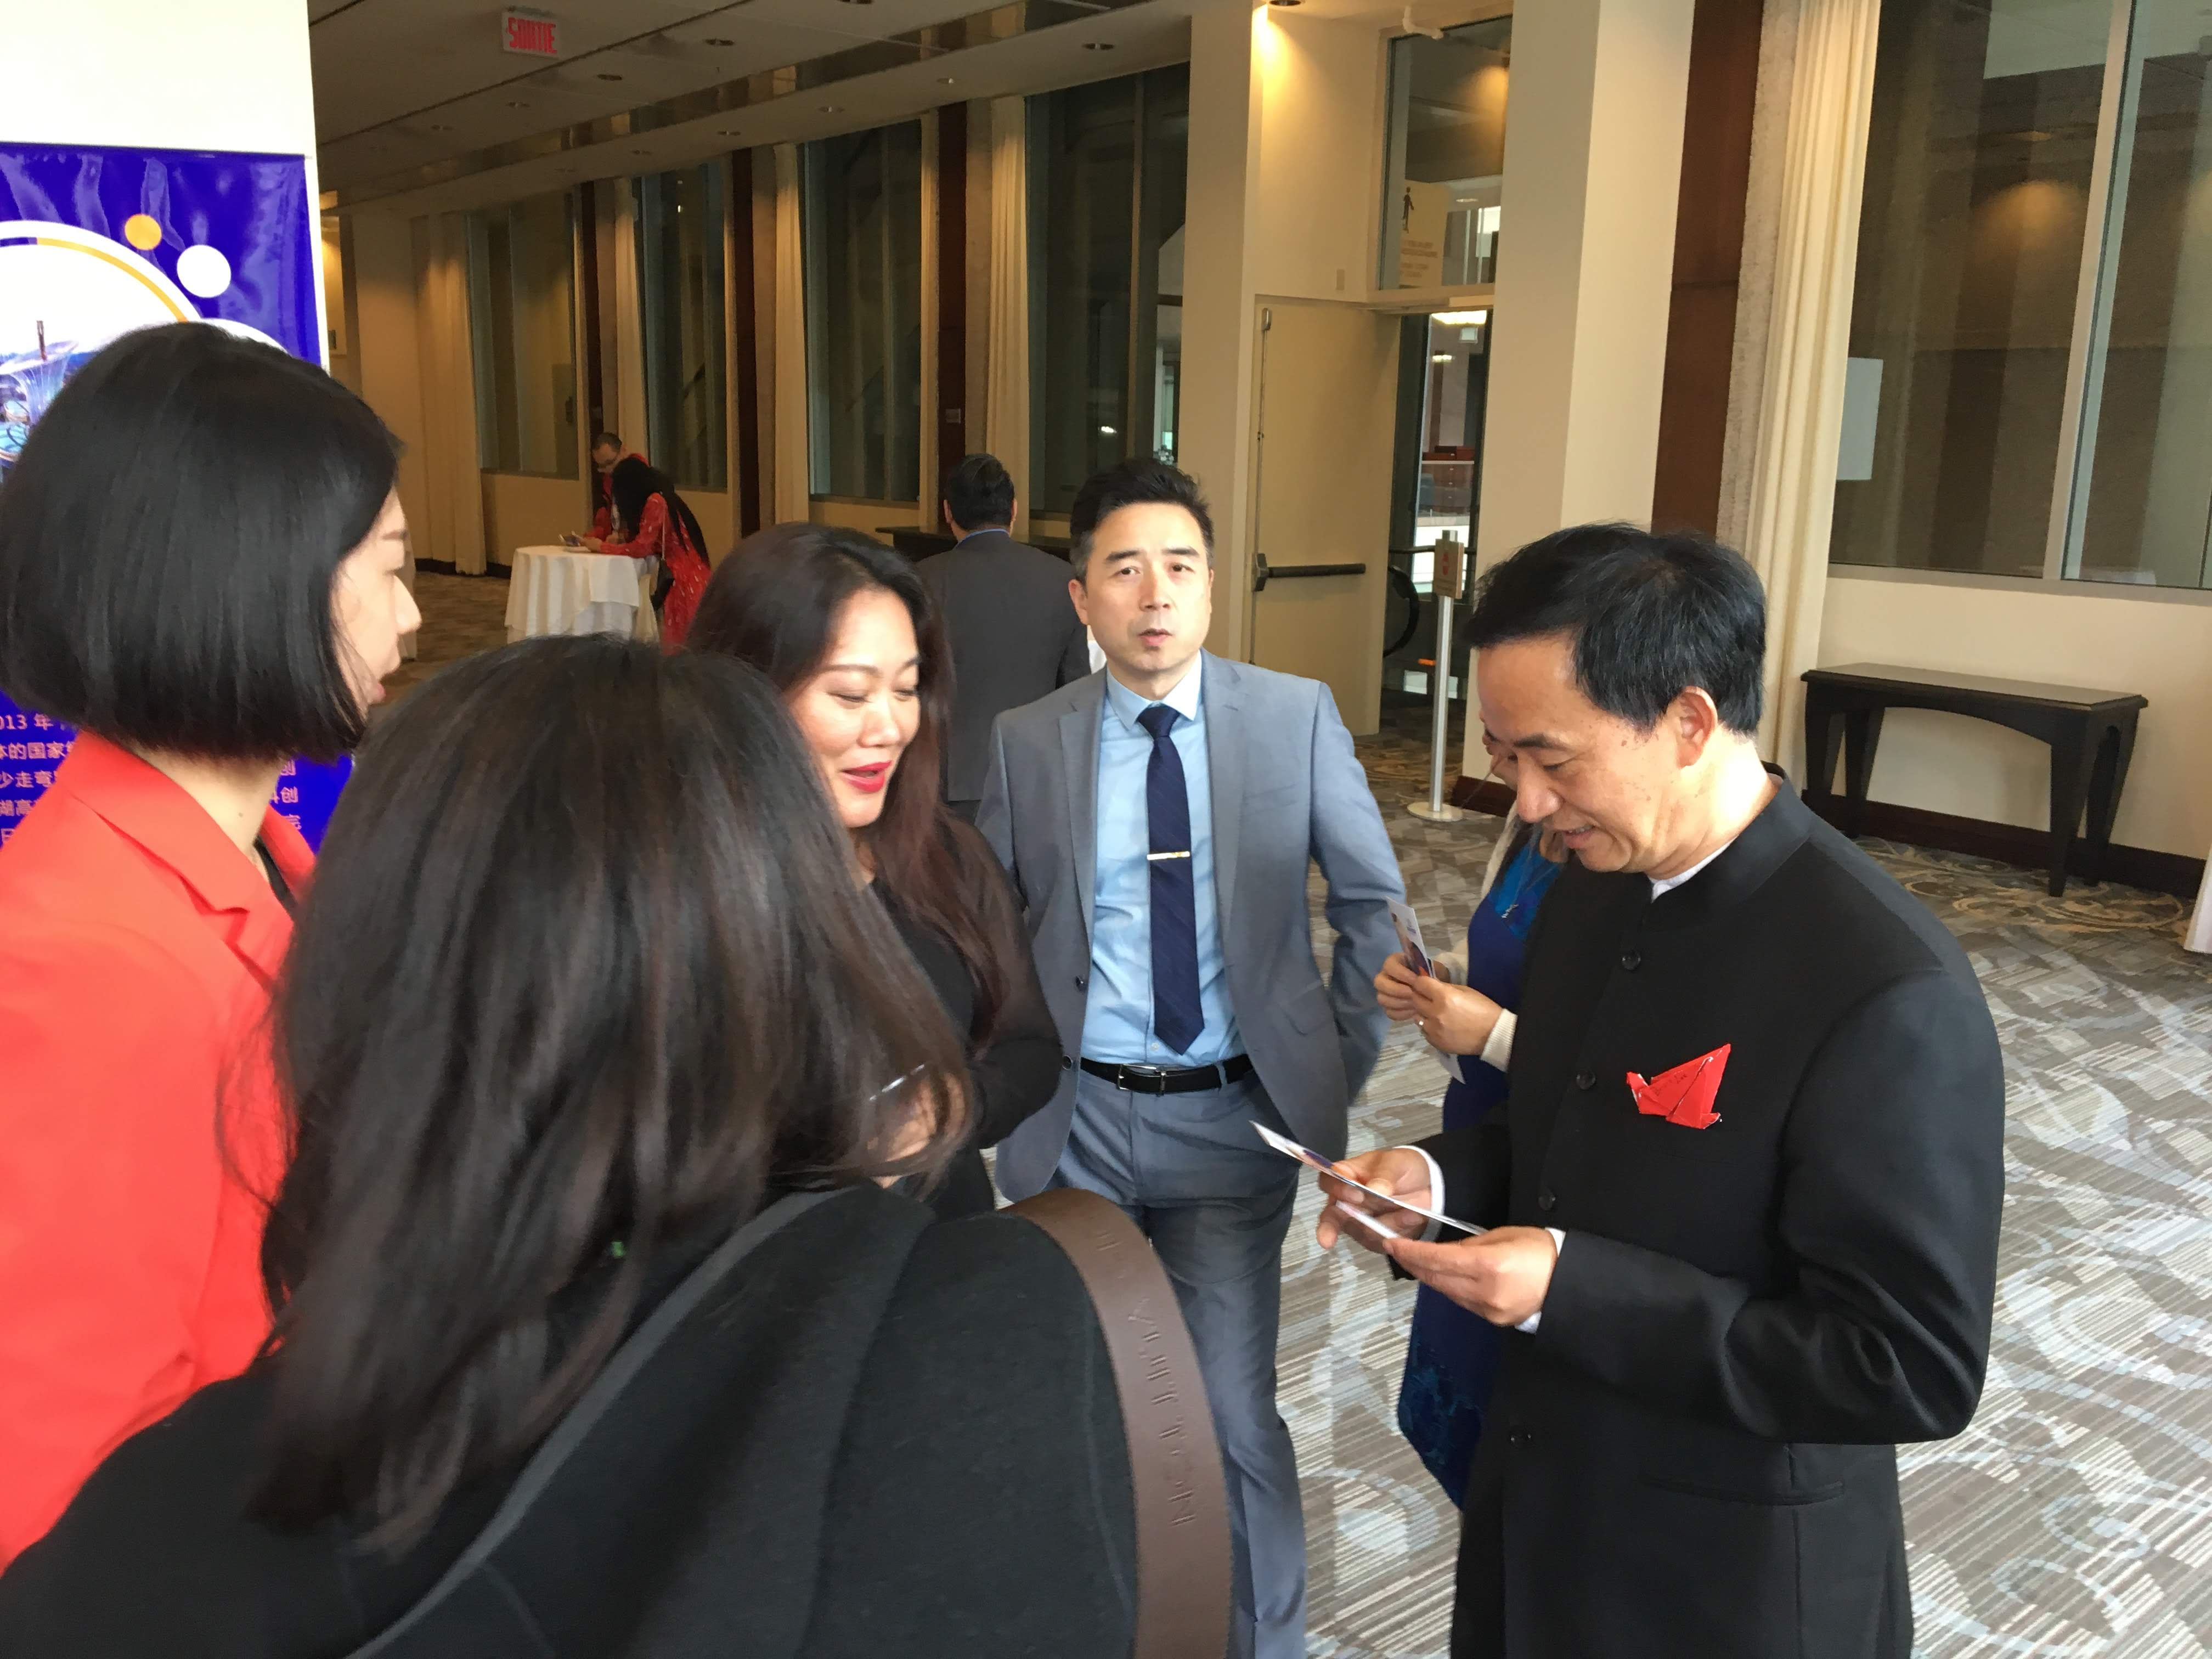 networking (11)